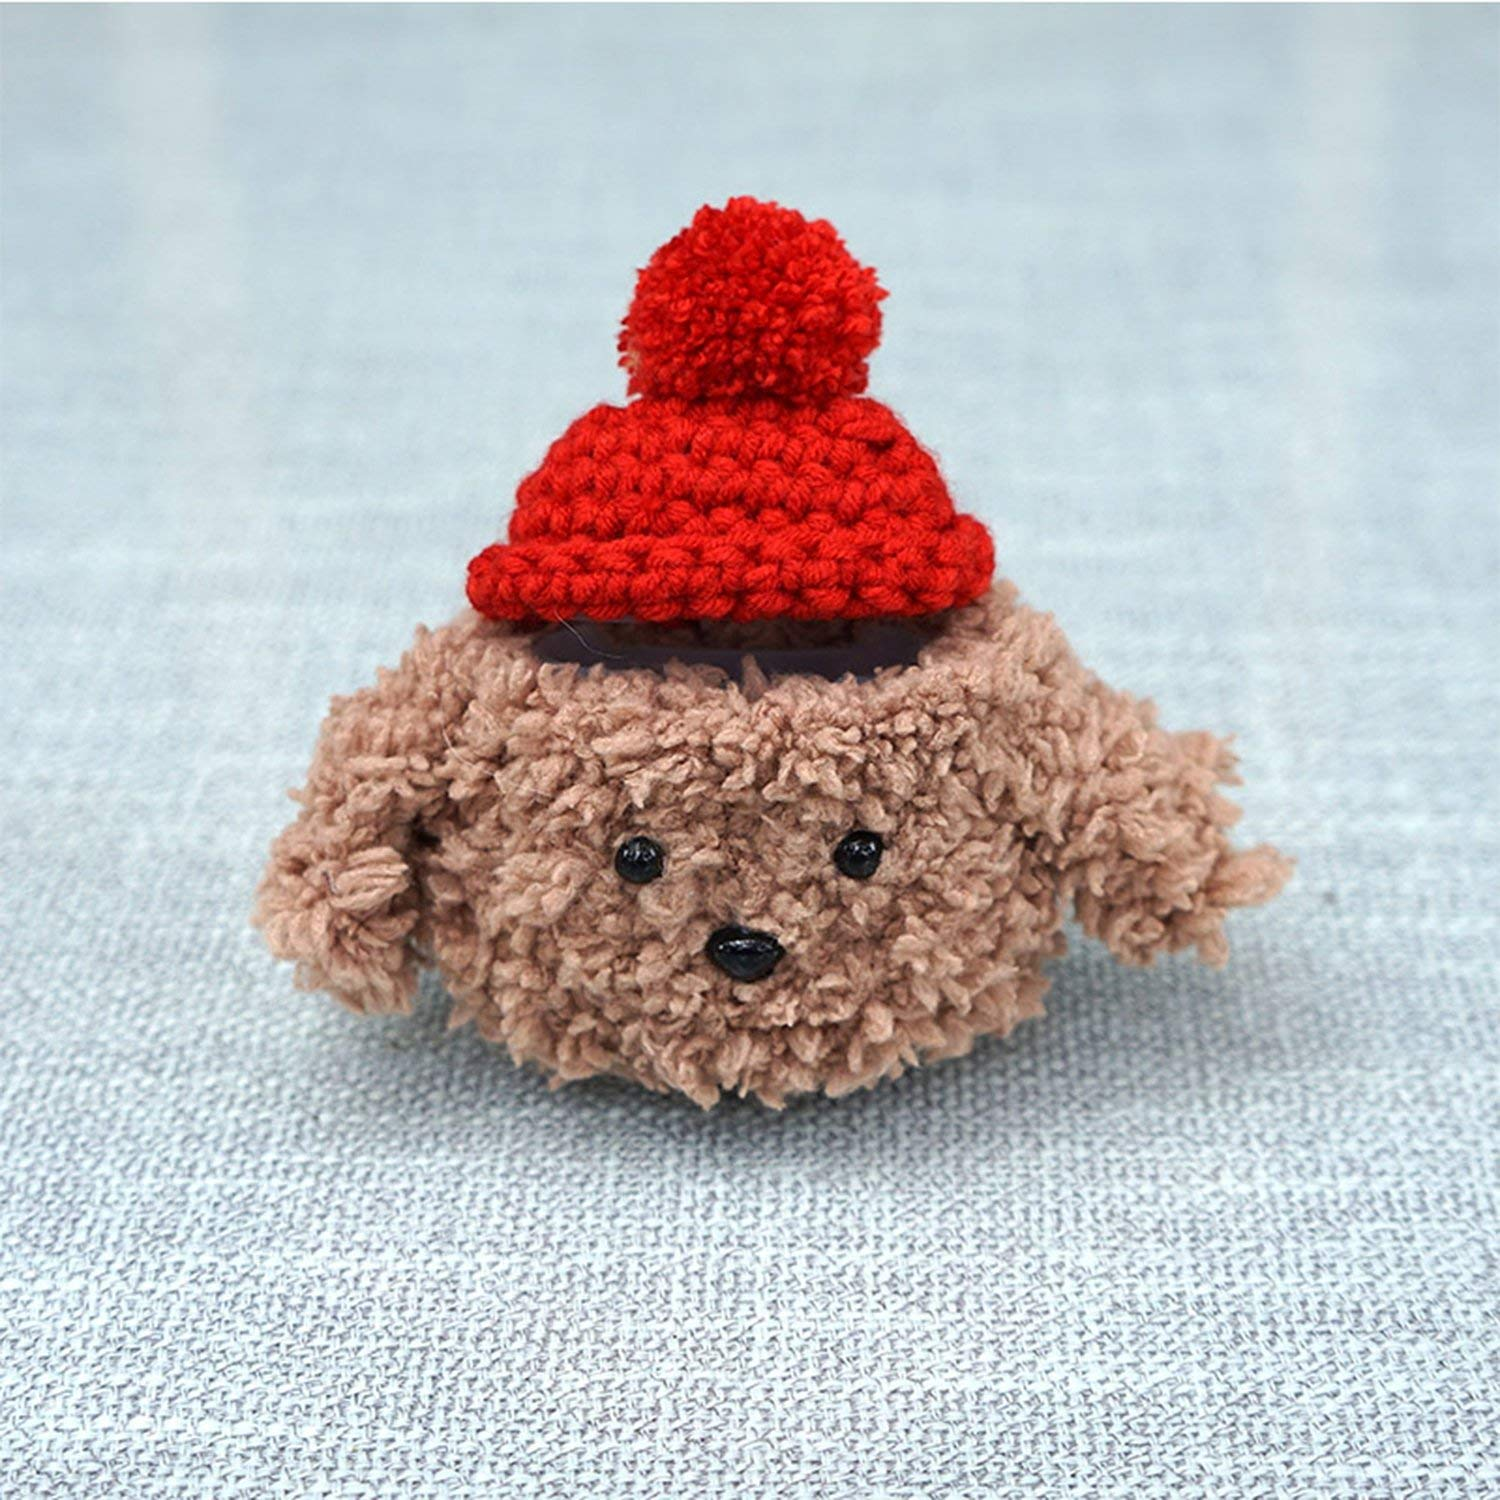 Amazon.com: Handmade Knitting Teddy Dog Earphones Case for ...